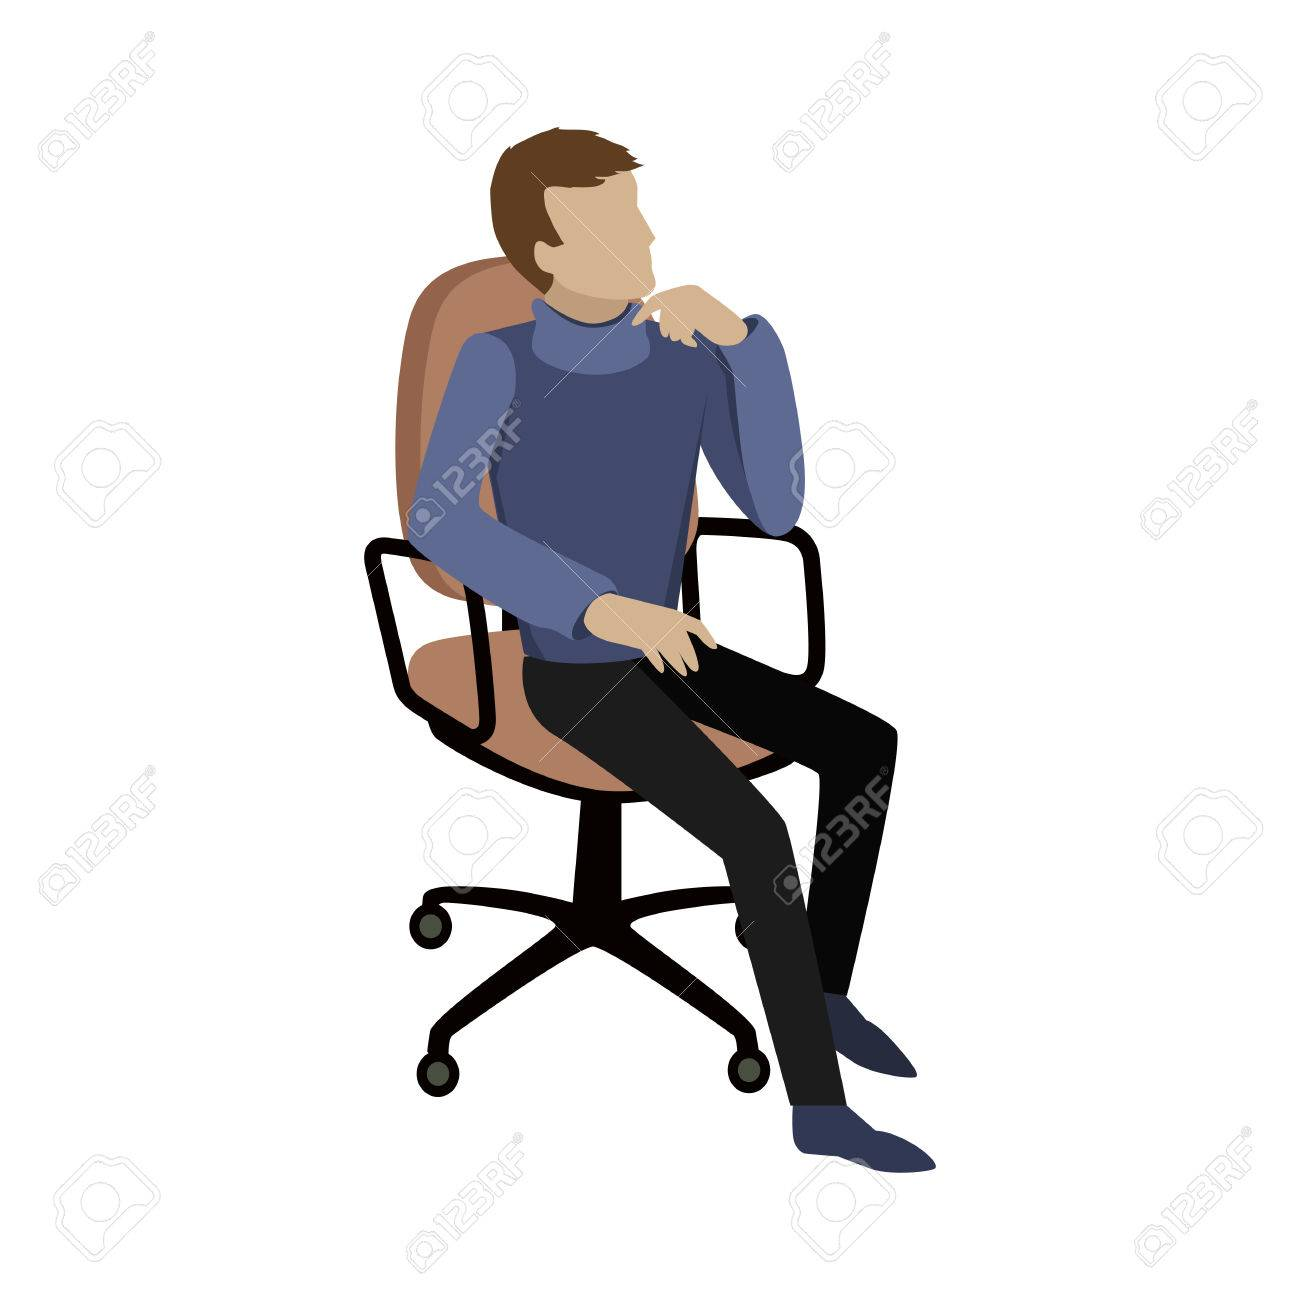 Man sitting on chair and dreaming about something or thinking...